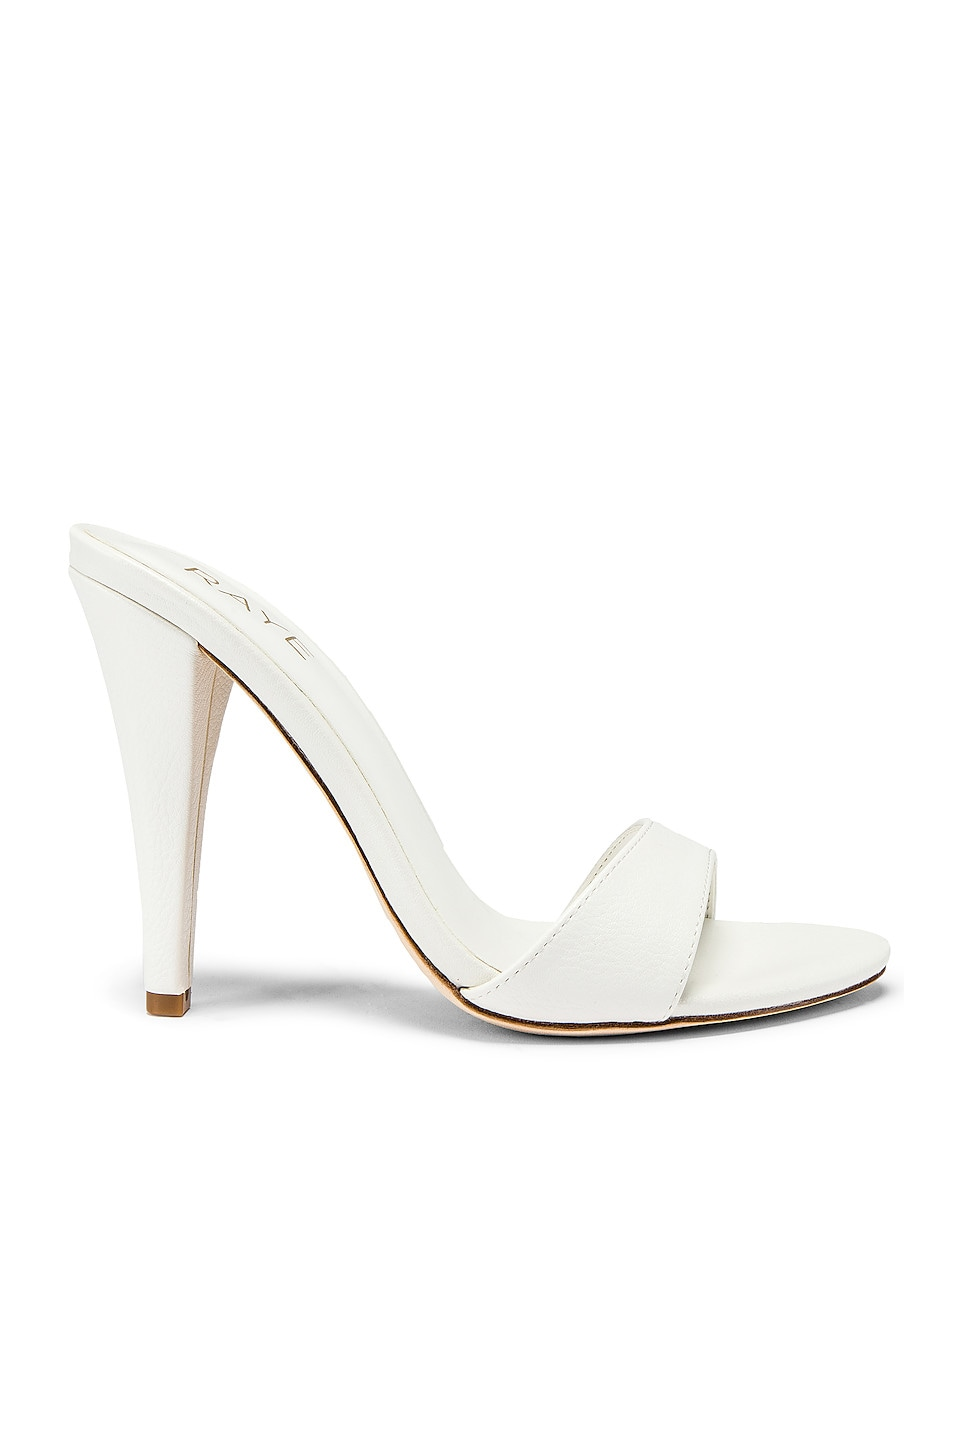 RAYE Cocktail Heel in White